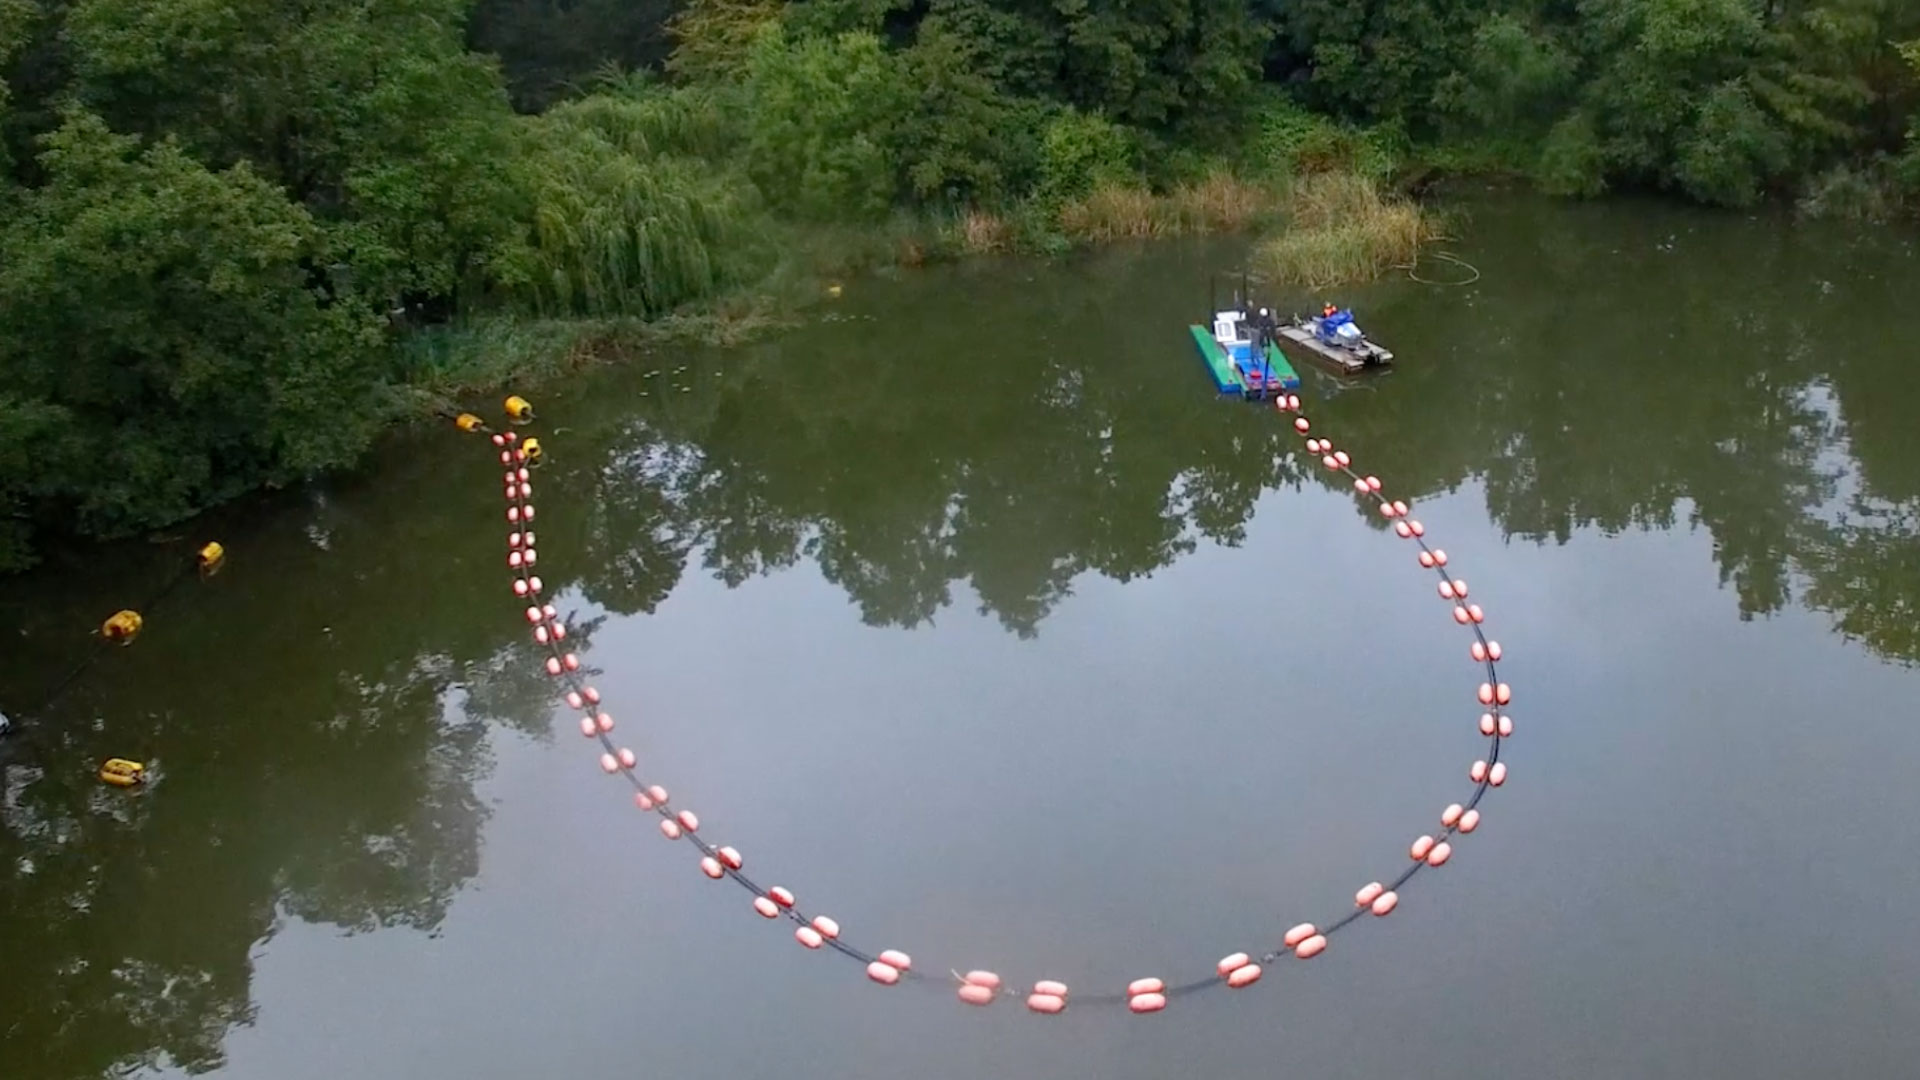 Restoring the lake and environment<br>Reinickendorf Berlin, Germany.